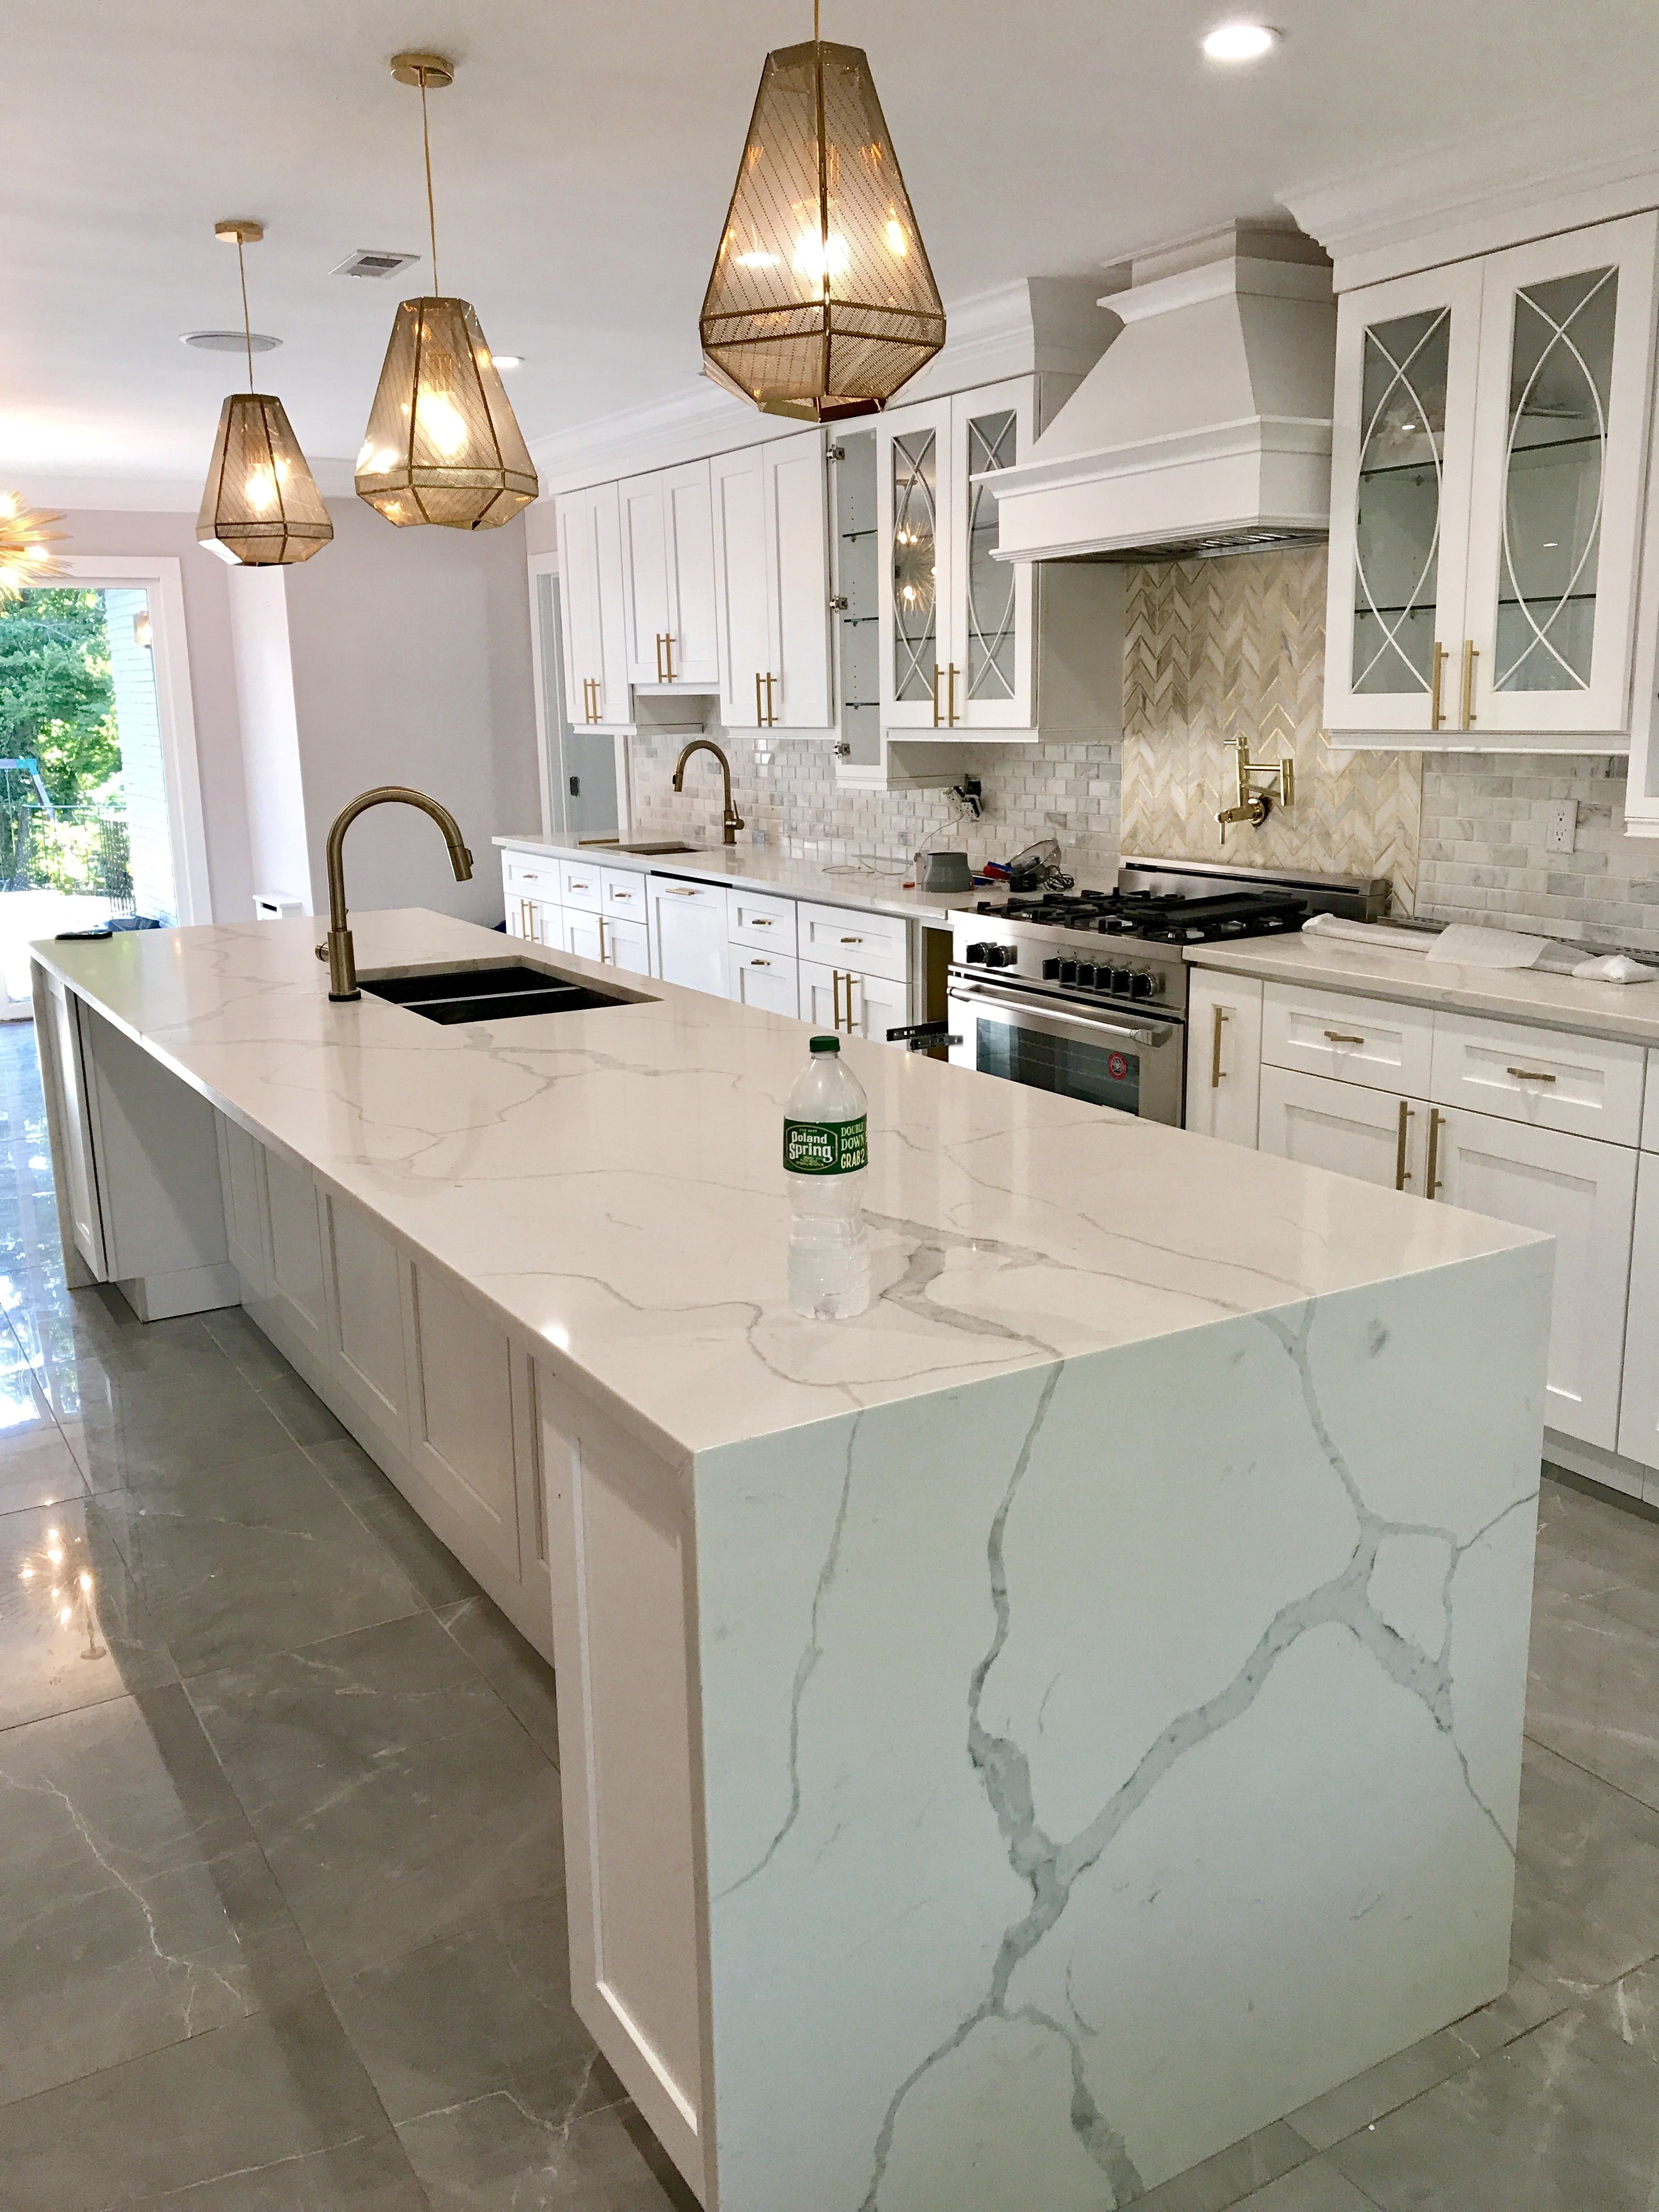 pin by sael abecassis on our home kitchen remodel galley kitchen island open concept kitchen on kitchen remodel with island open concept id=72155